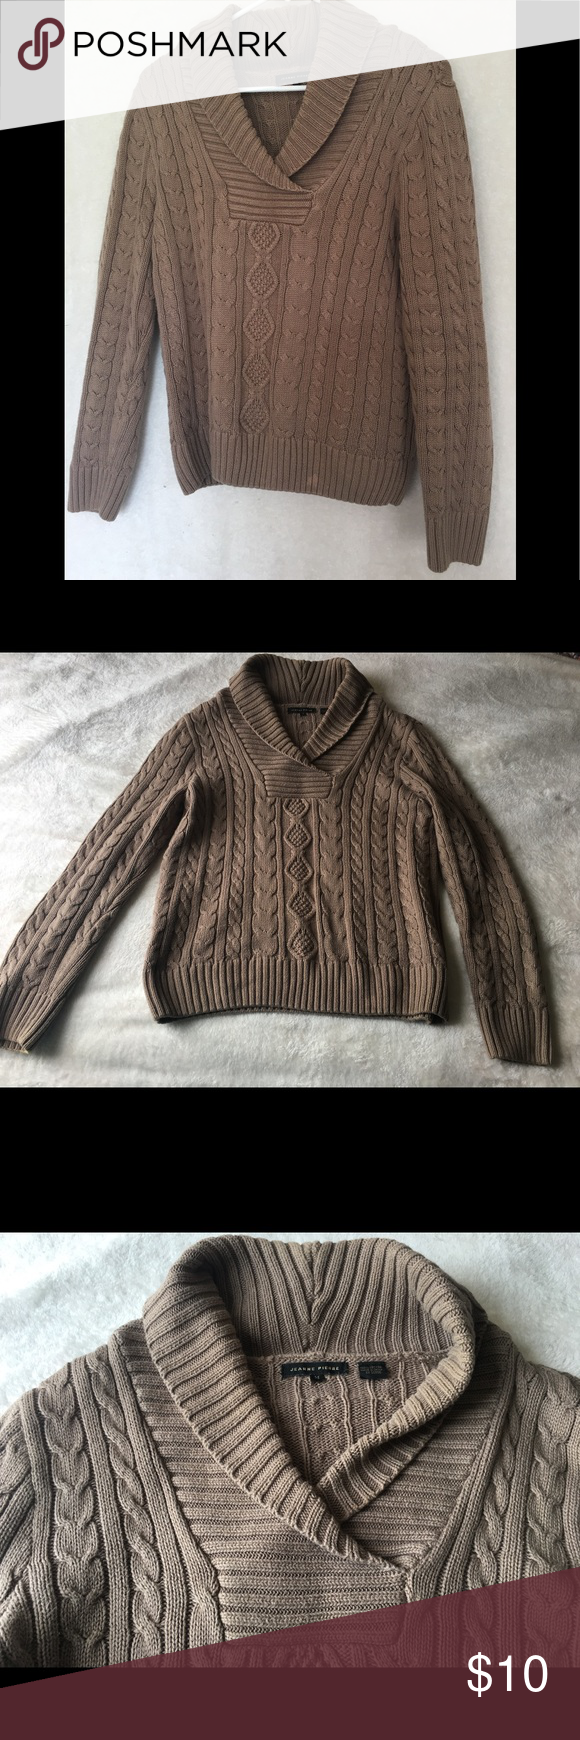 Jeanne Pierre brown sweater | Brown and Customer support